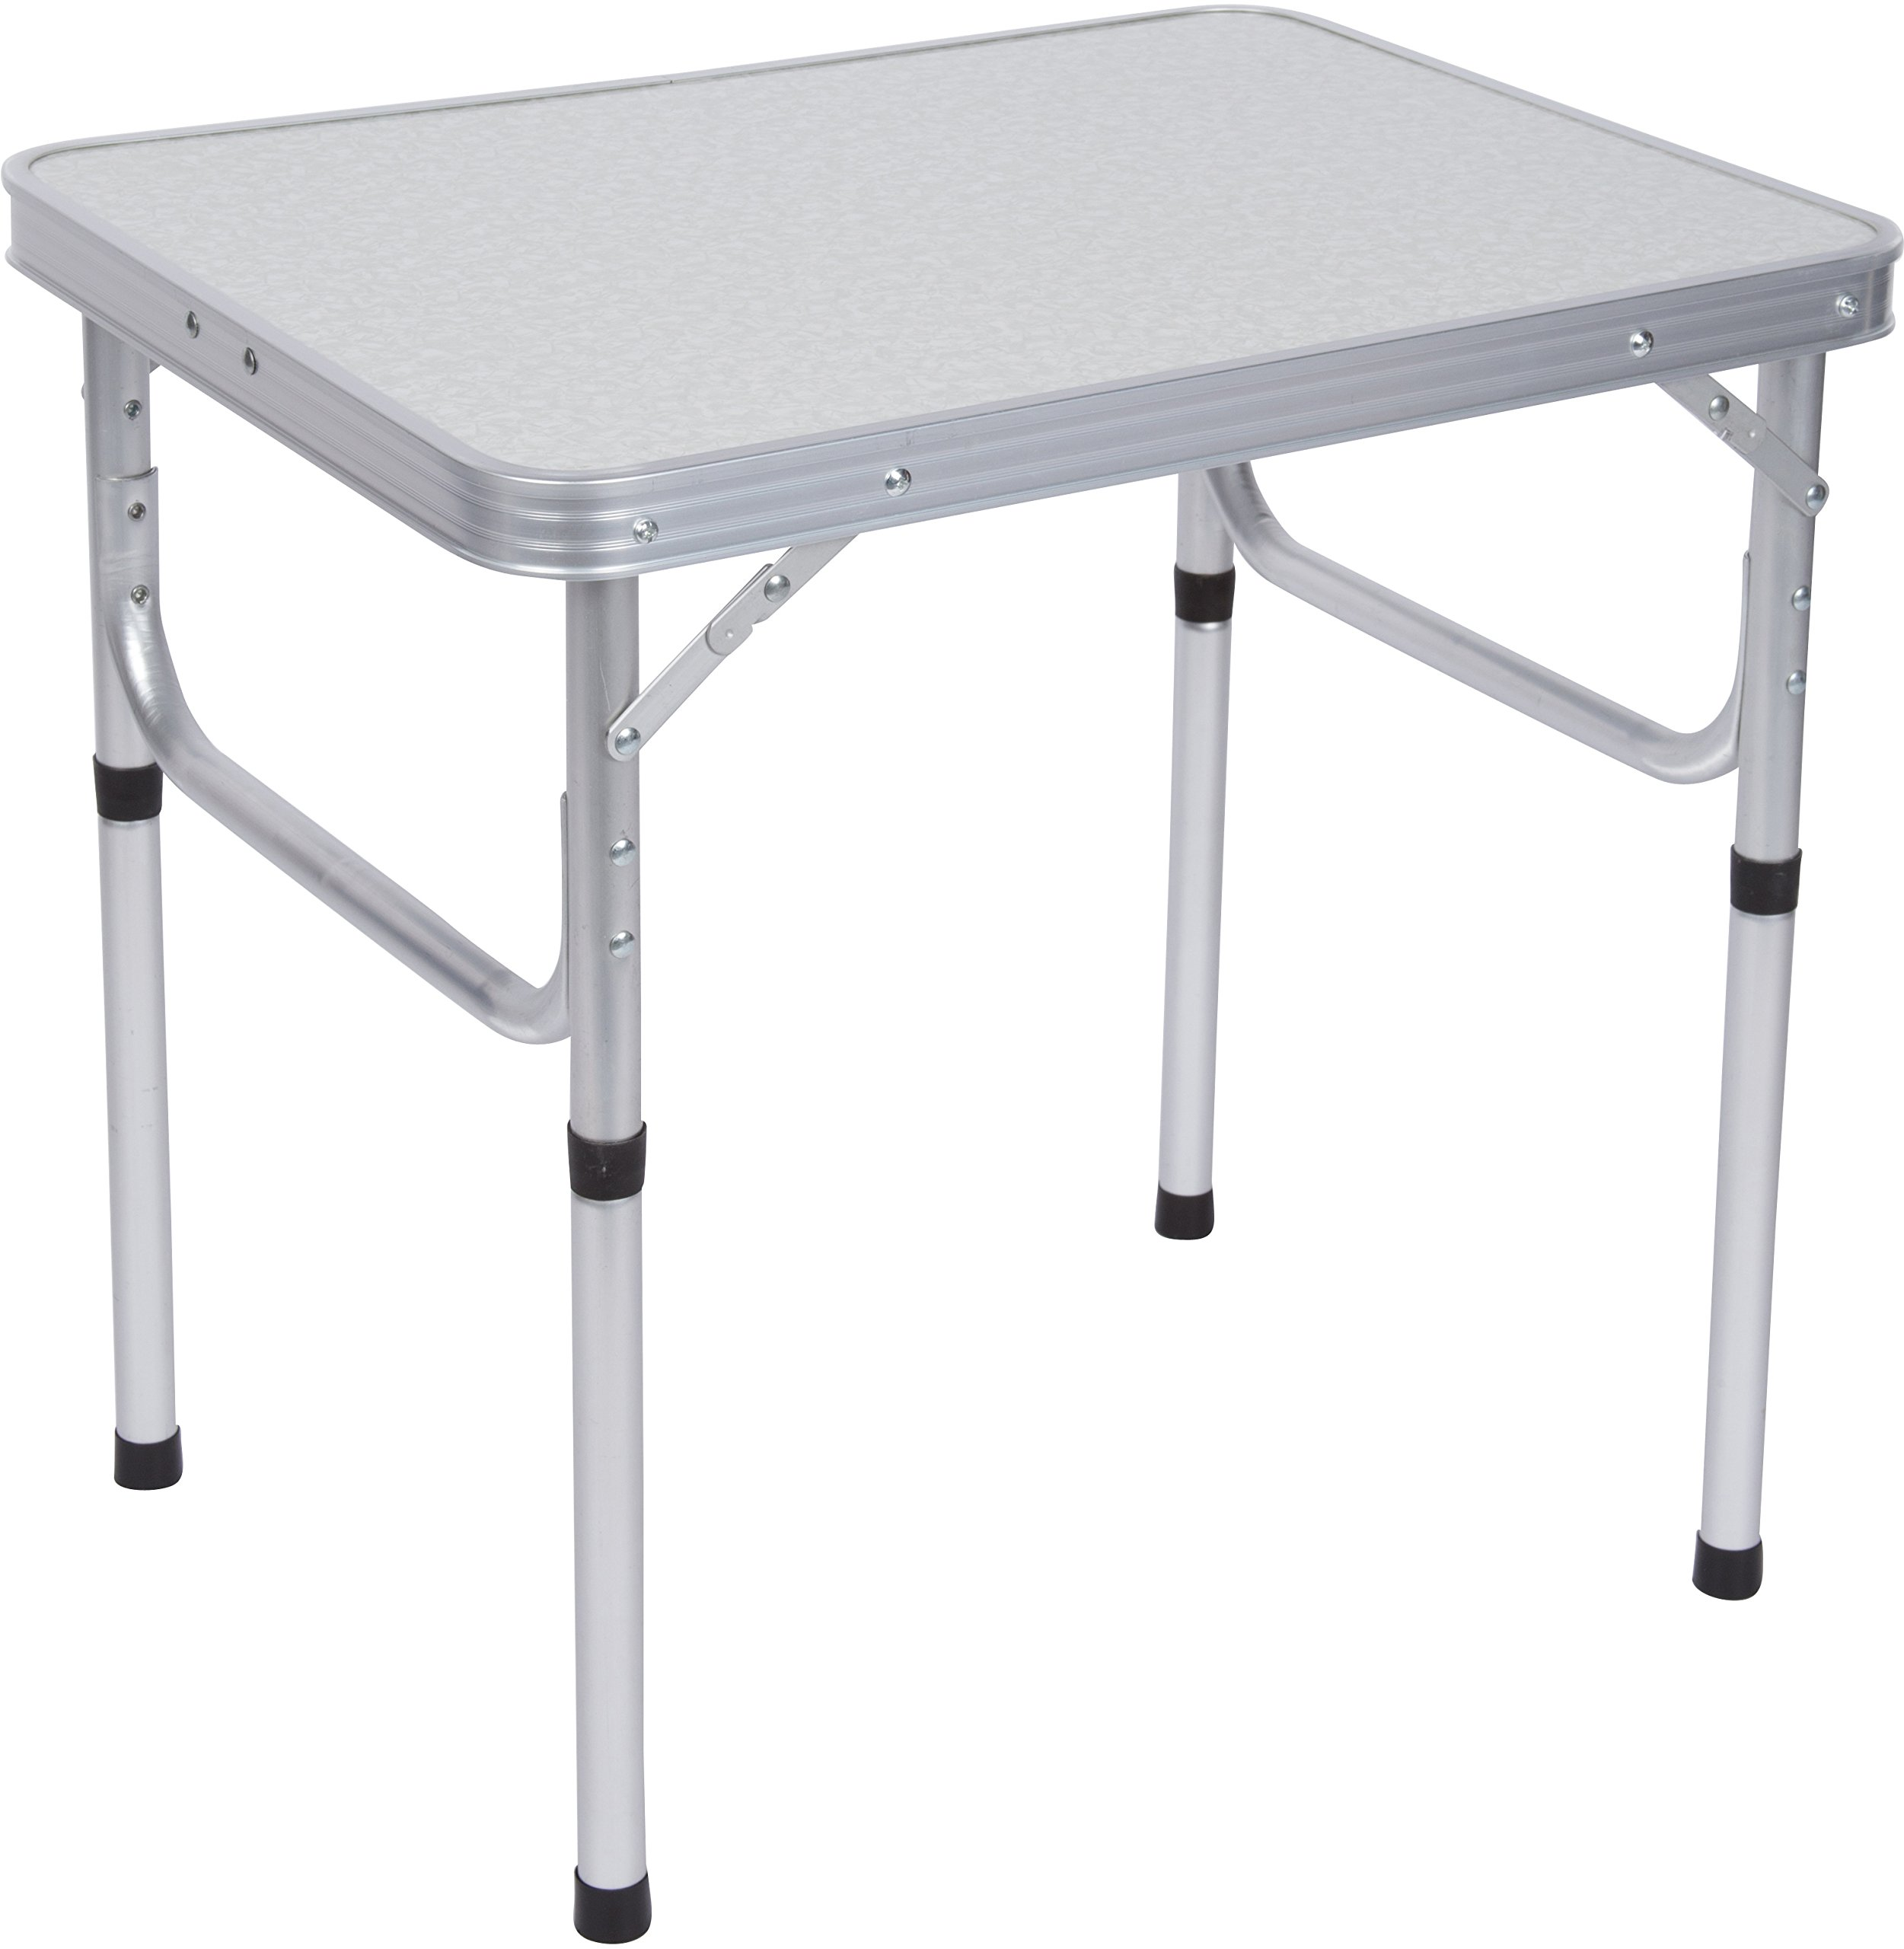 Trademark Innovations Aluminum Adjustable Portable Folding Camp Table Carry Handle